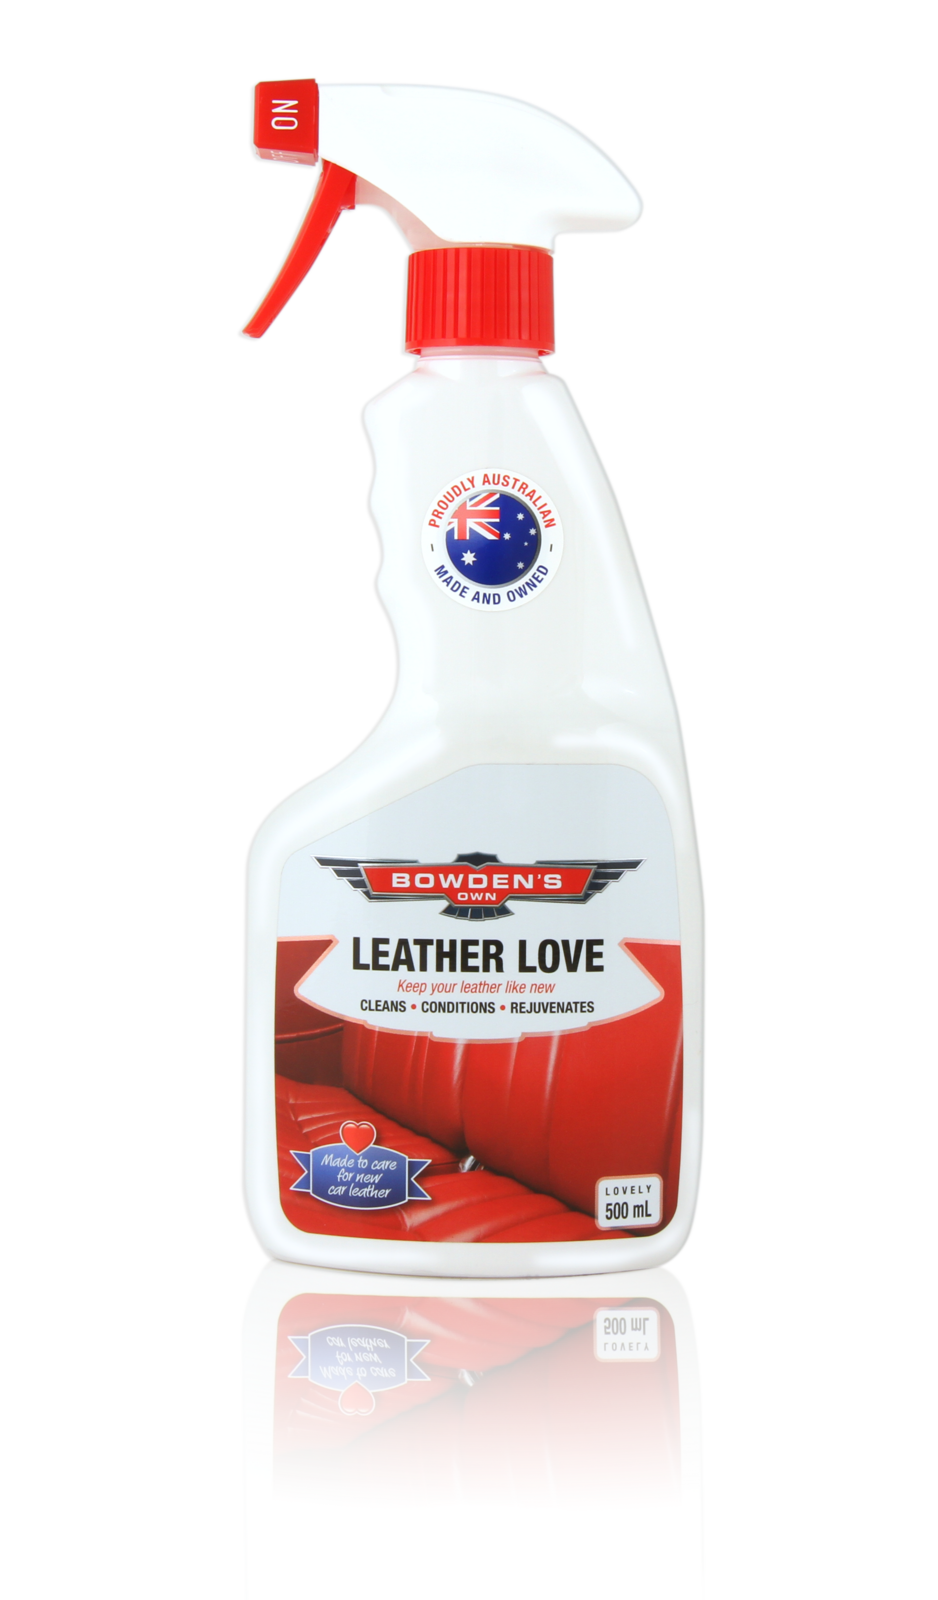 Bowden's Own Leather Love